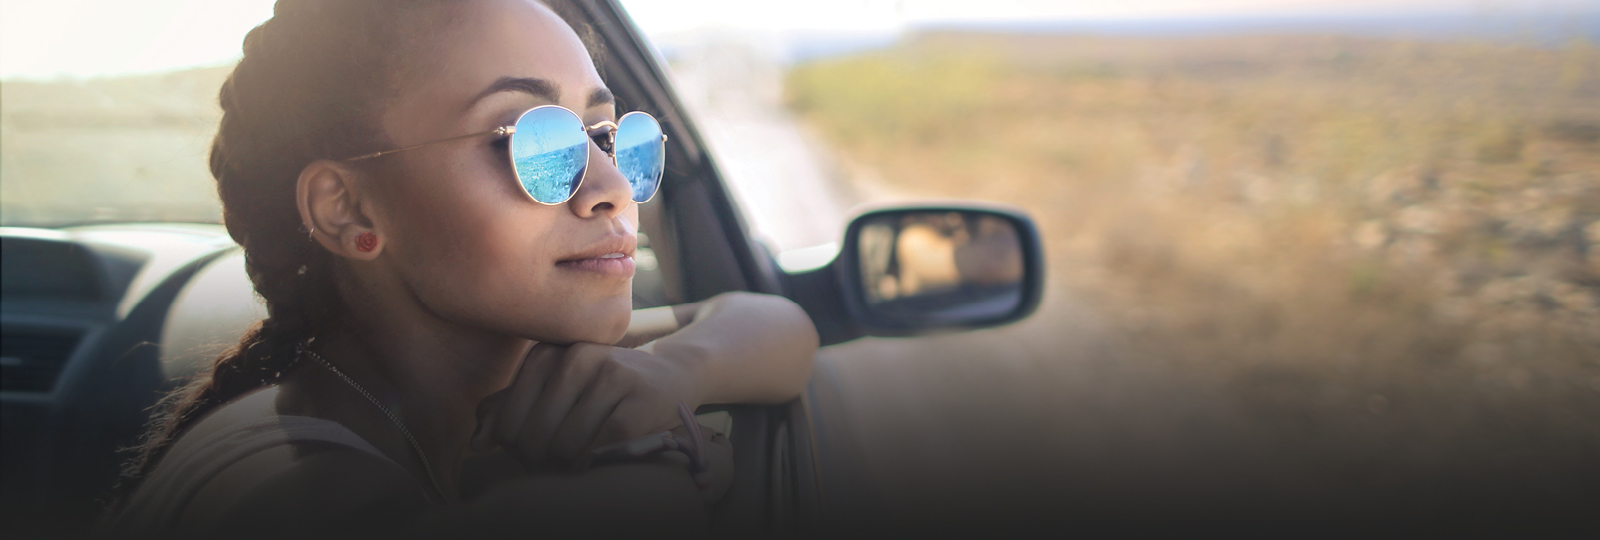 woman wearing sunglasses looking out a car window